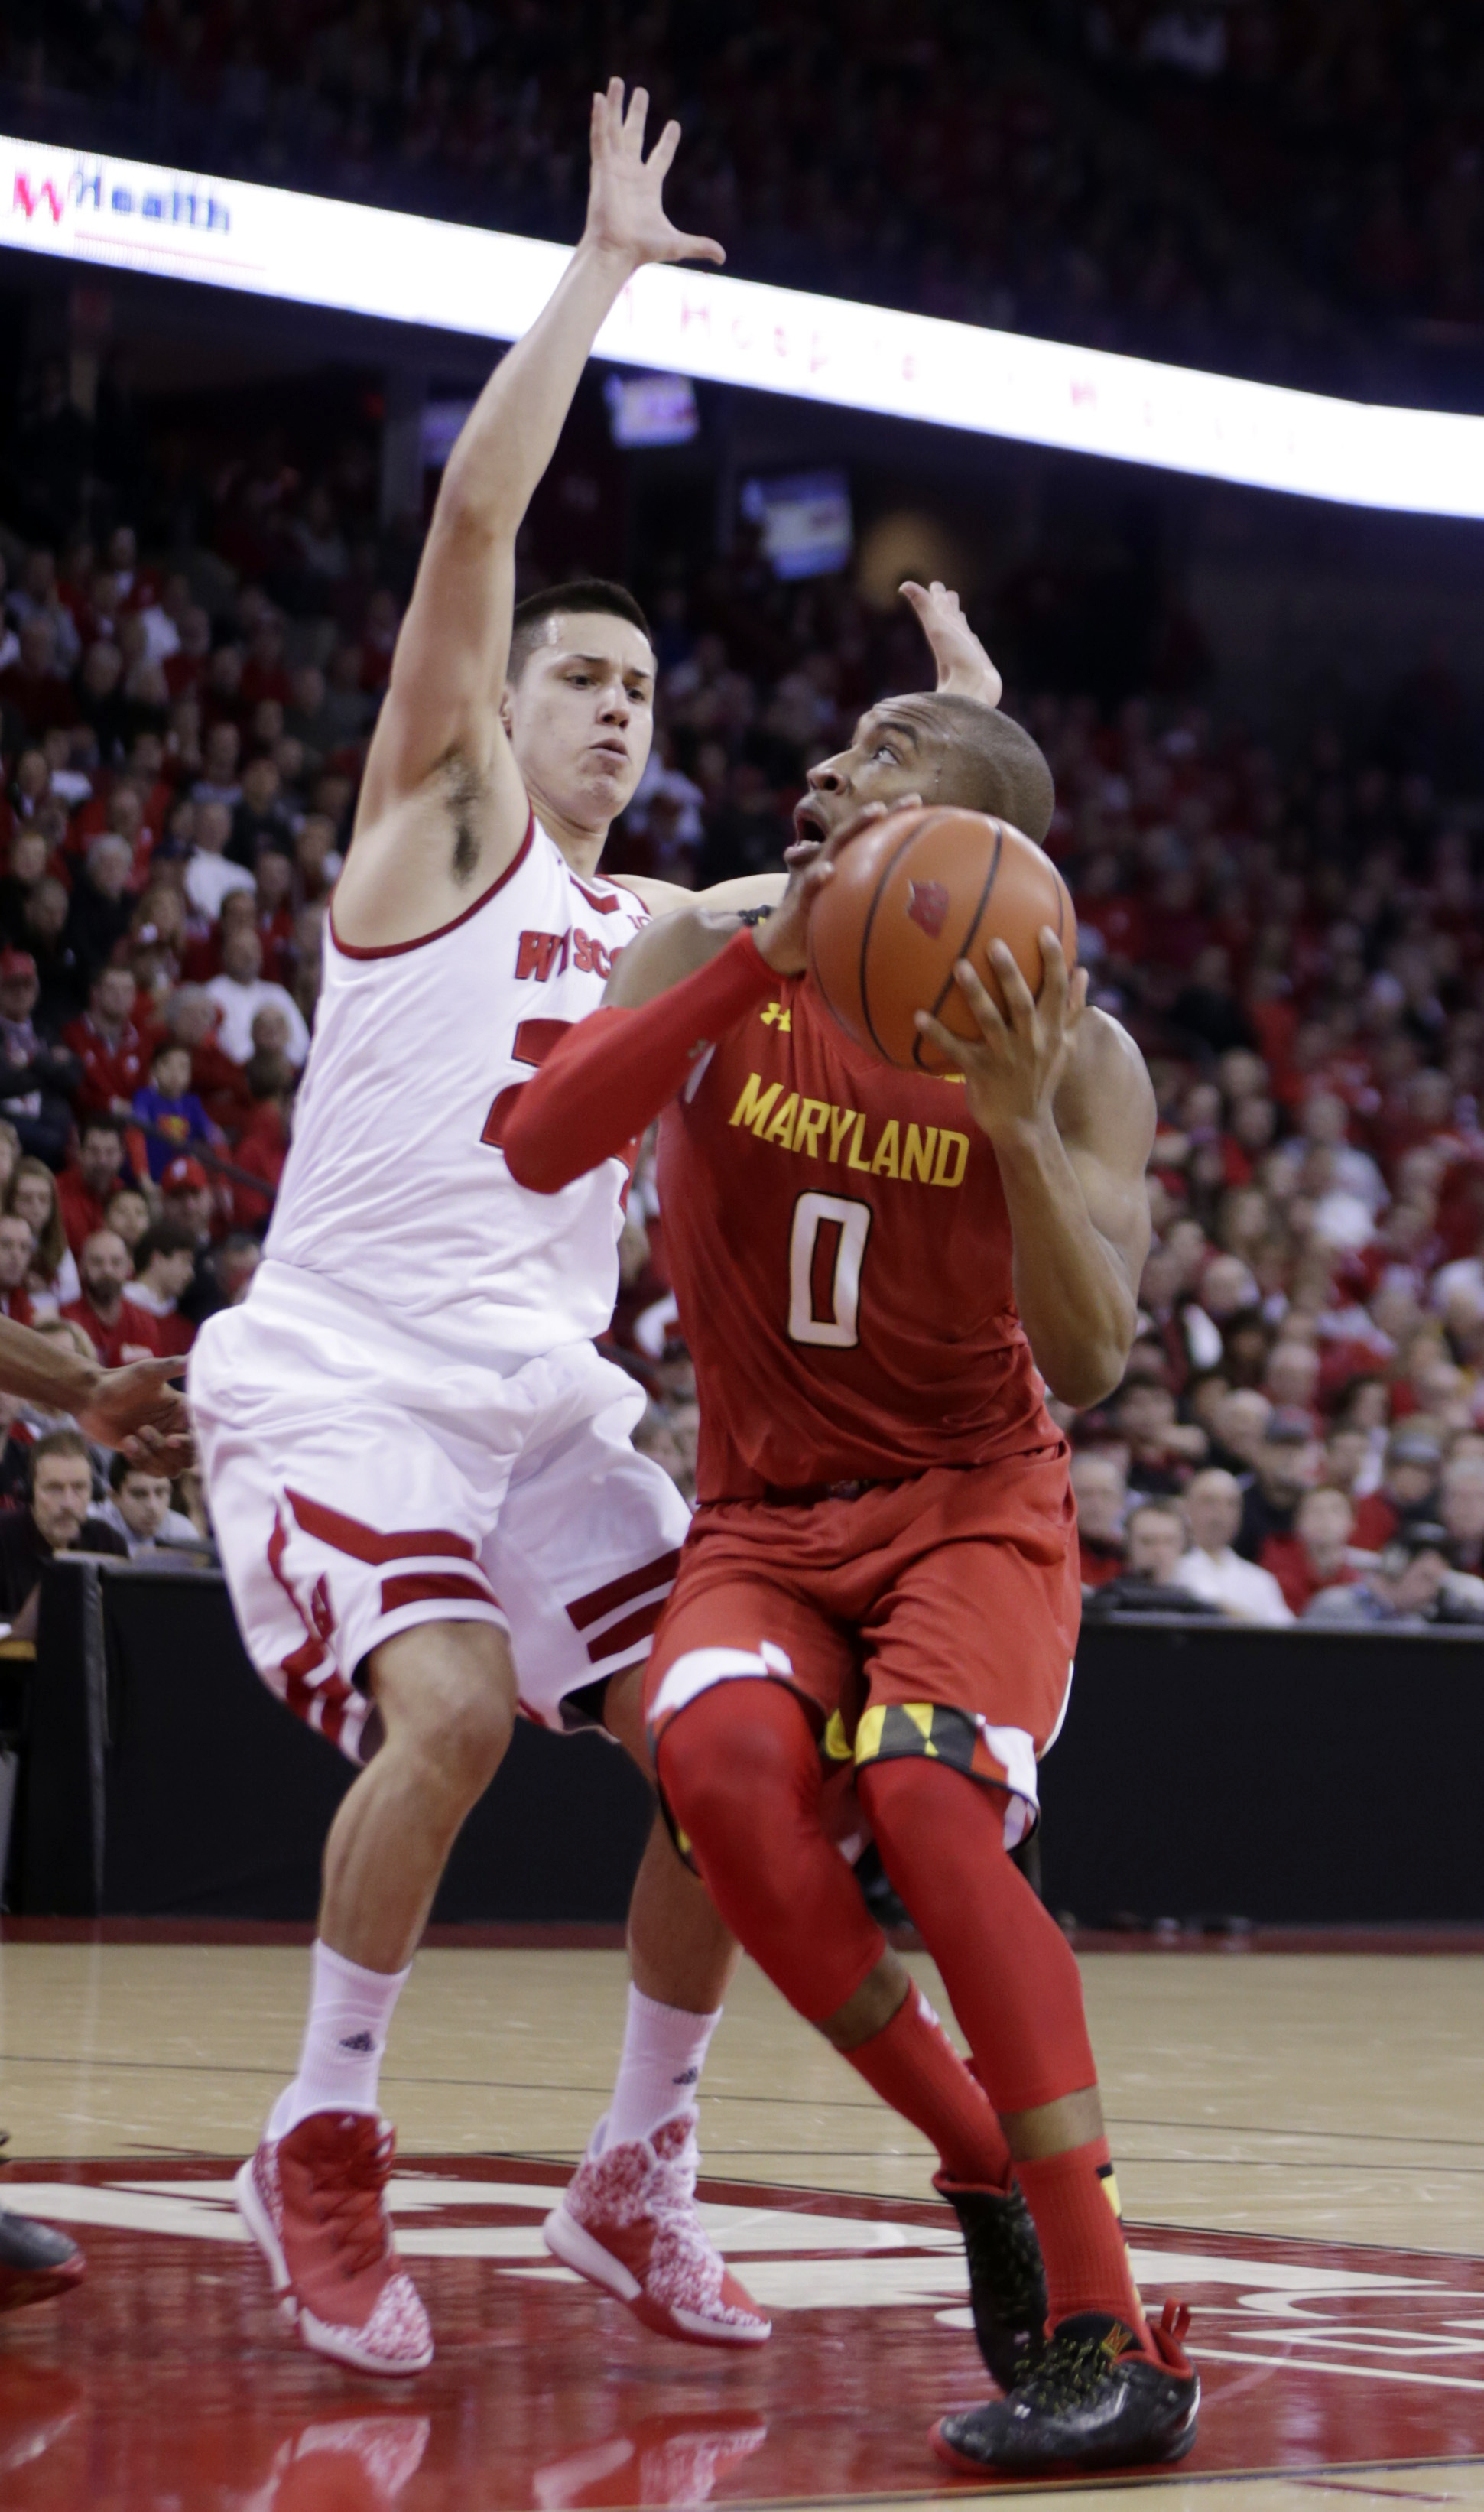 Maryland's Rasheed Sulaimon (0) looks to shoot against Wisconsin's Bronson Koenig (24) during the first half of an NCAA college basketball game, Saturday, Jan. 9, 2016, in Madison, Wis. (AP Photo/Andy Manis)